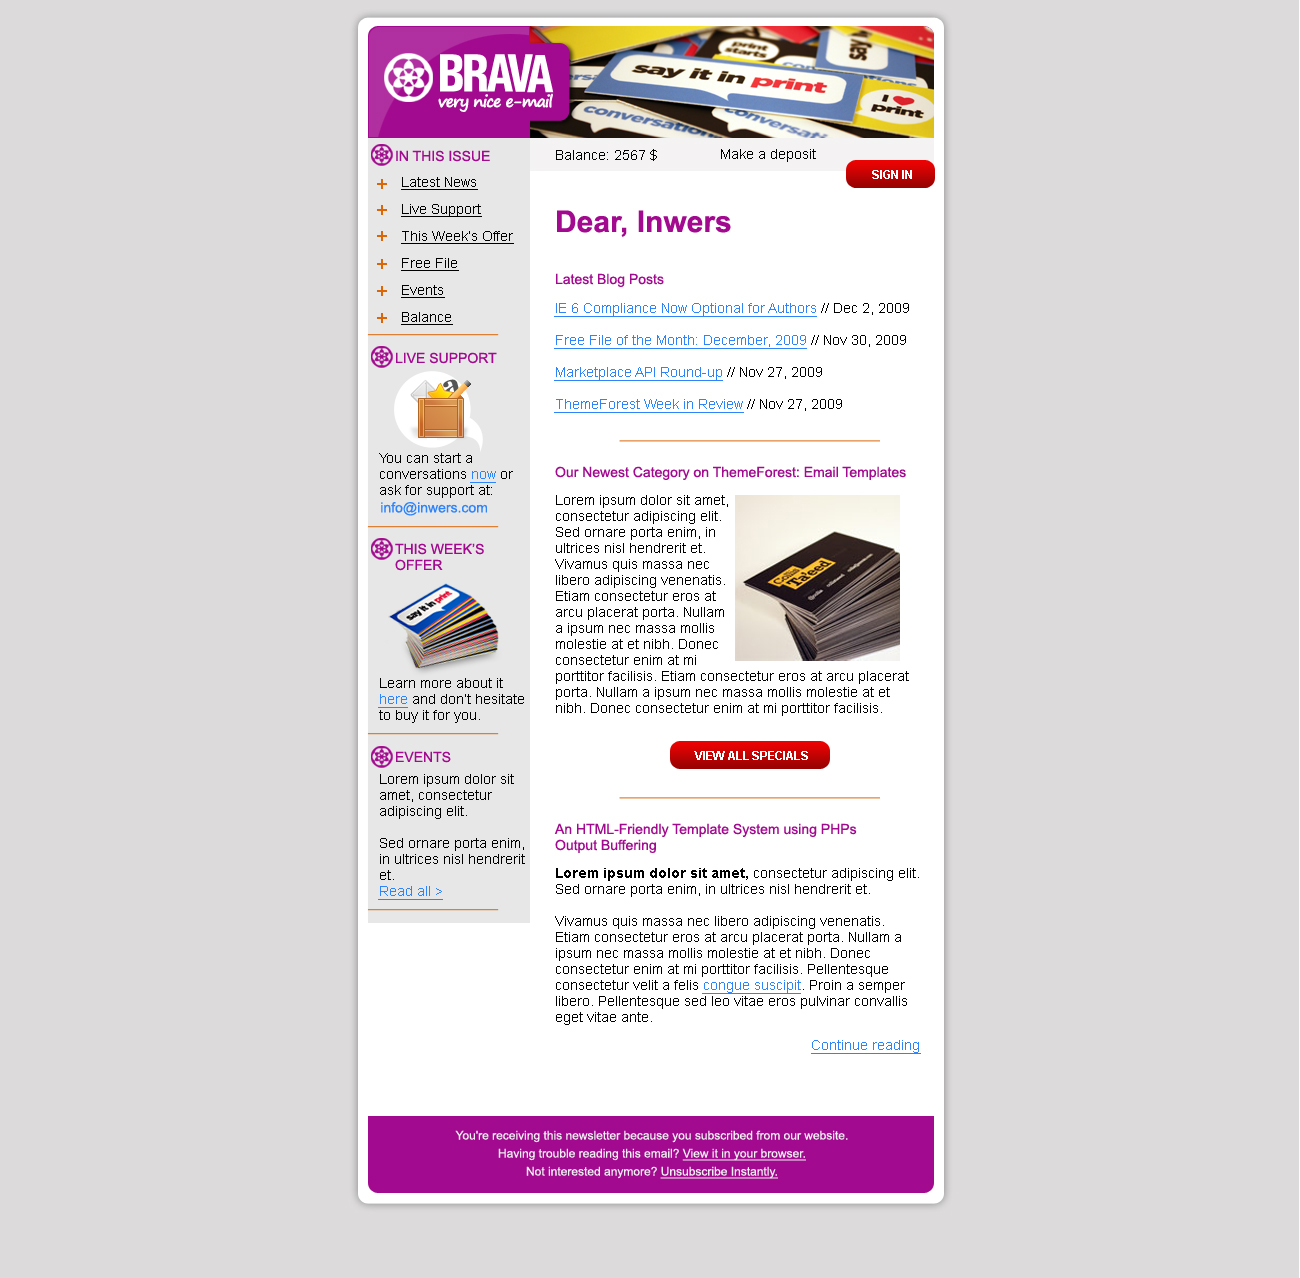 BRAVA - a corporate nice e-mail - Inwers - Brava Purple